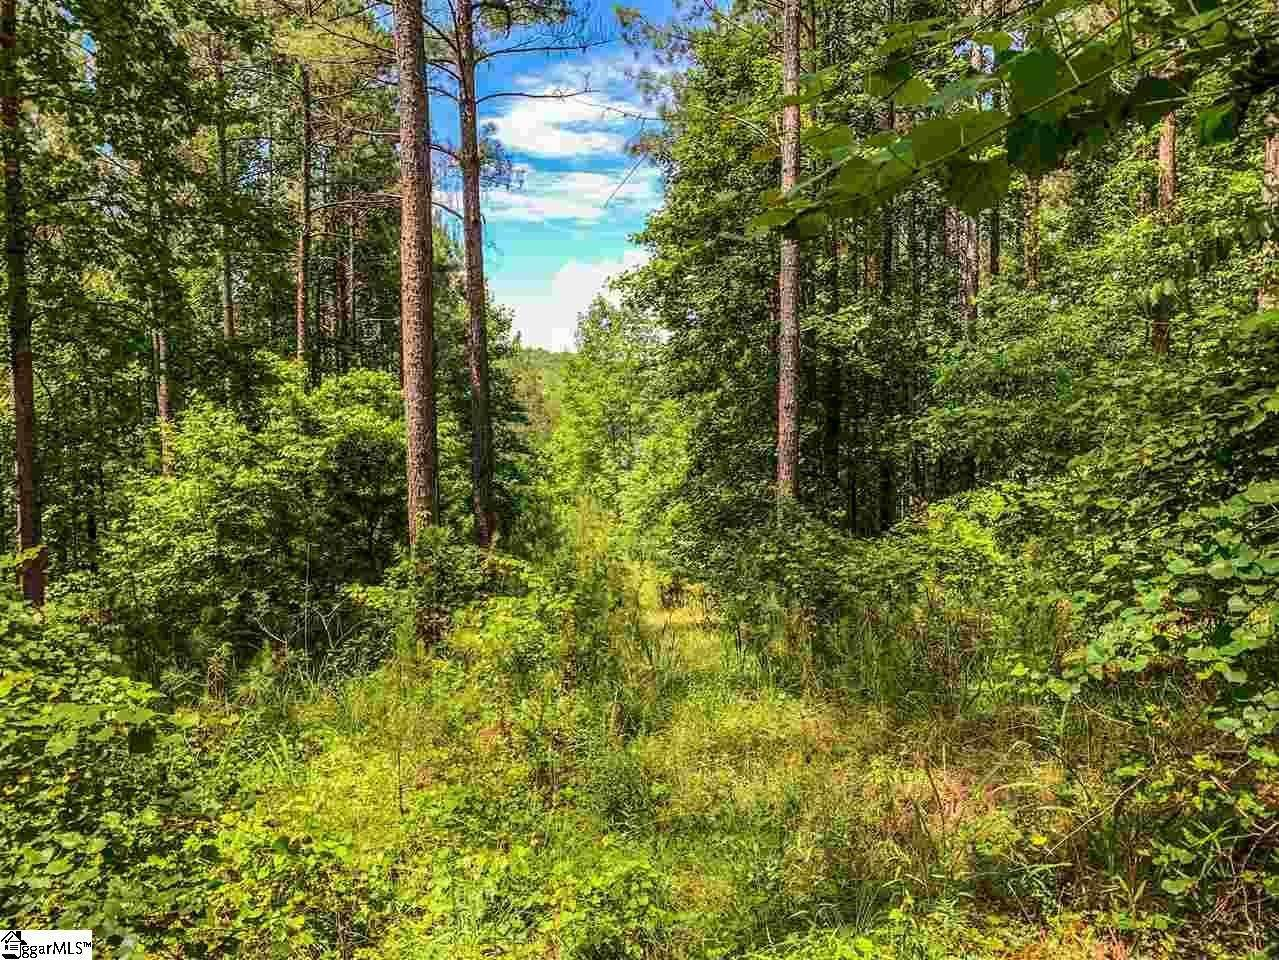 Residential Lot for Sale at The Cliffs At Keowee Springs, Six Mile, SC 29682